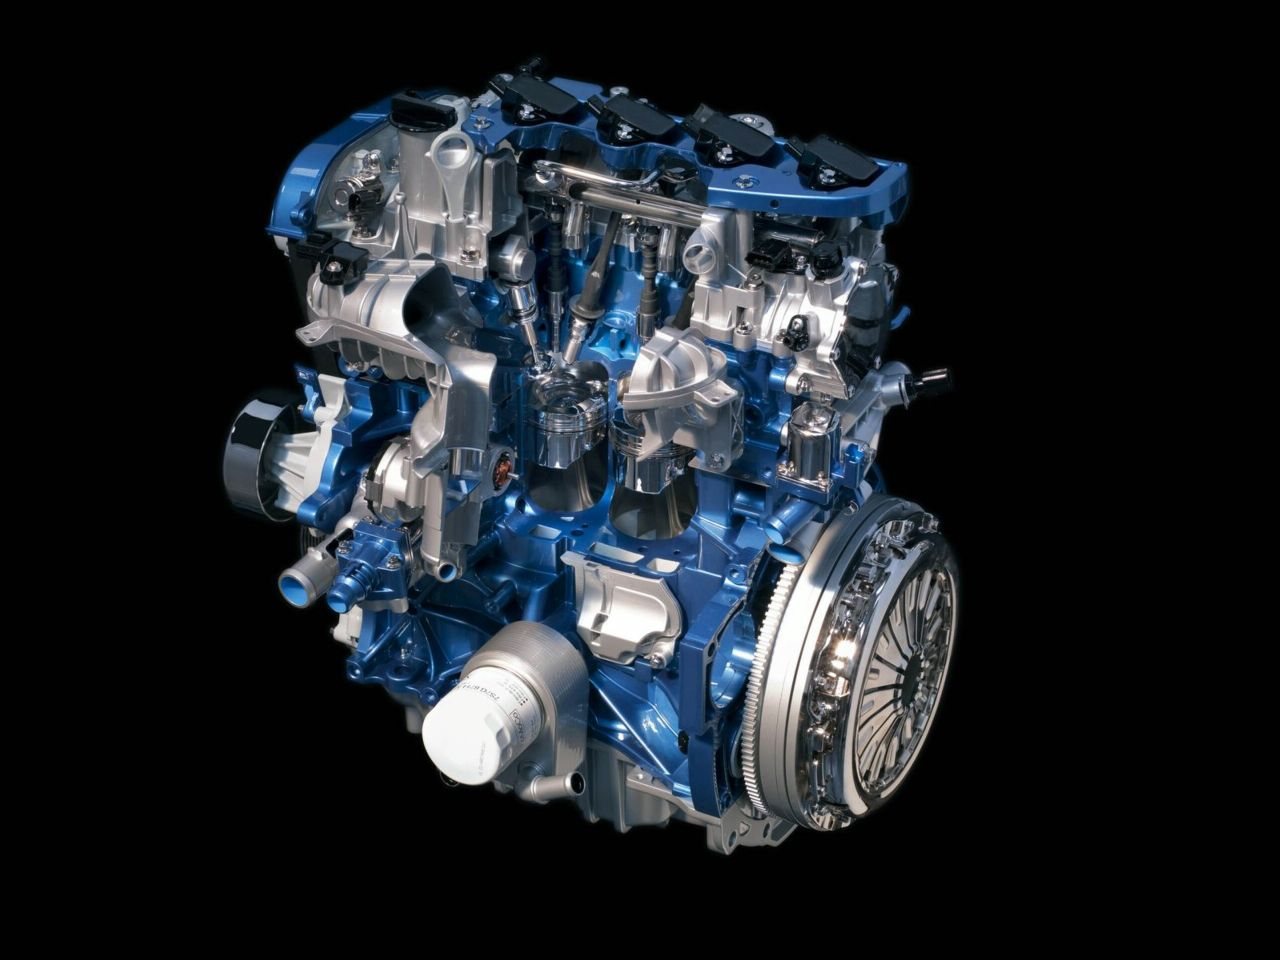 Ford Ecoboost Turbo Engines Explained